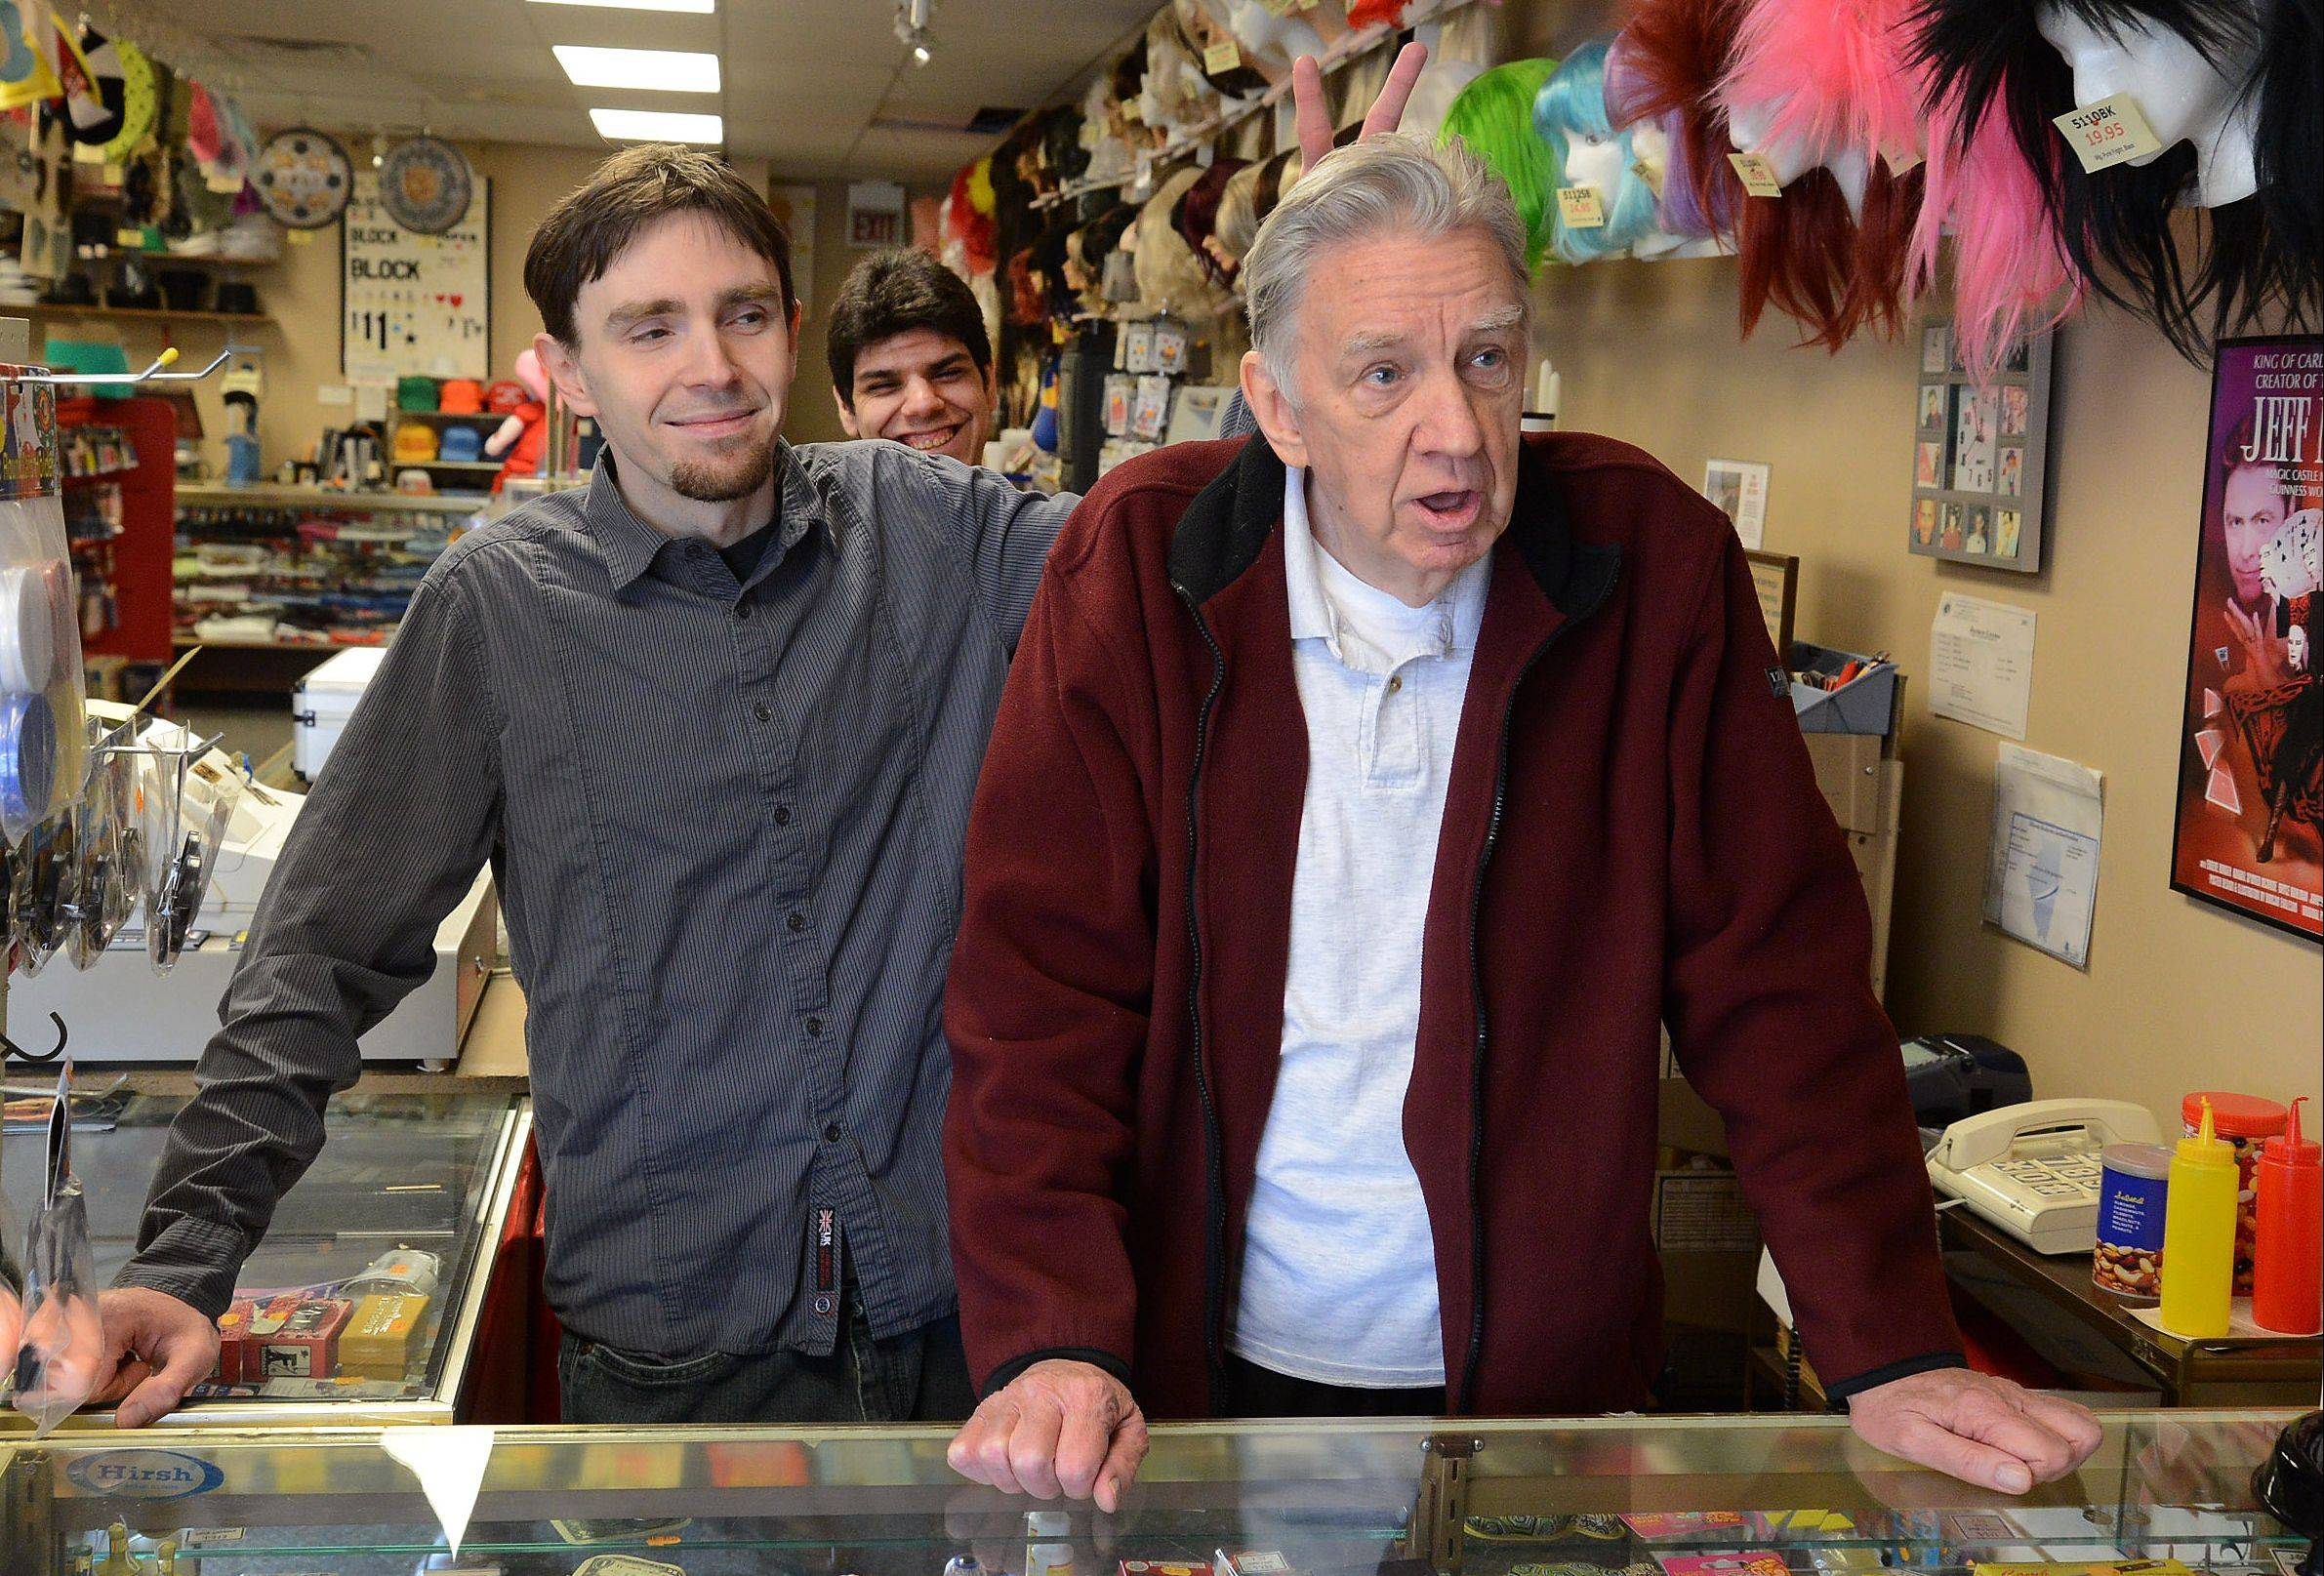 Always mixing in some fun with work, Brian Johnson, left, gives his dad, Phil Johnson, some rabbit ears as a grinning Trent Rivas enjoys the camaraderie at PJ's Trick Shop in Arlington Heights.